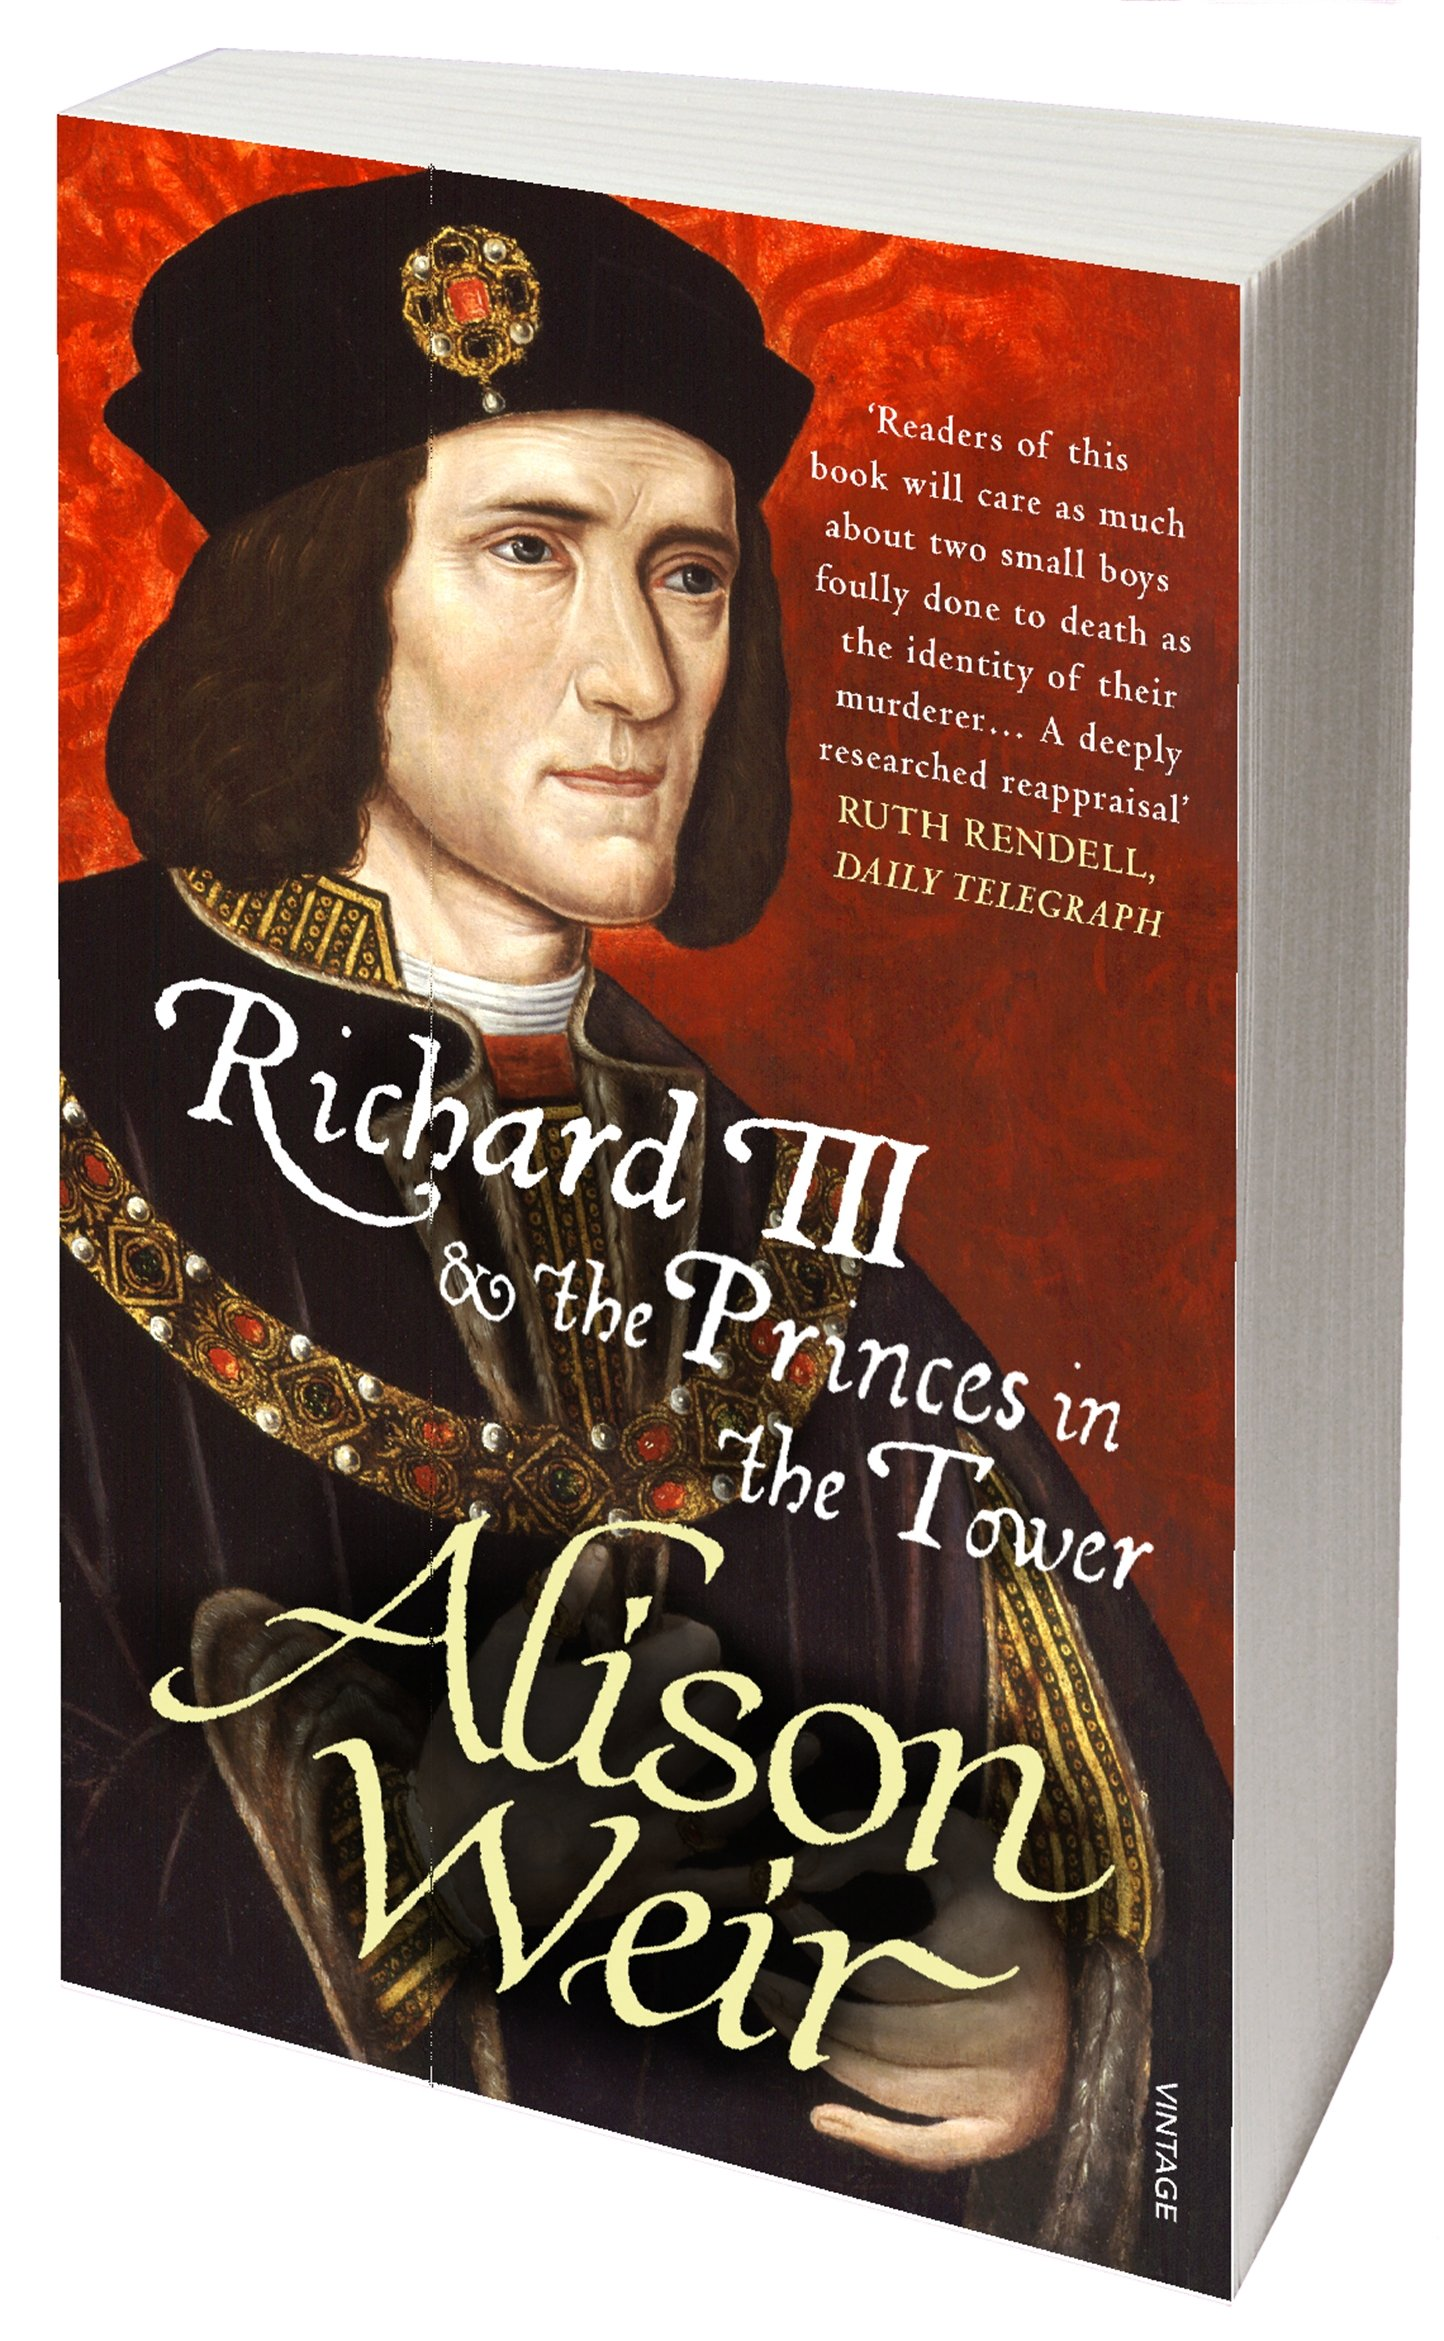 Richard Iii And The Princes In The Tower: Amazon: Alison Weir:  9781784700041: Books